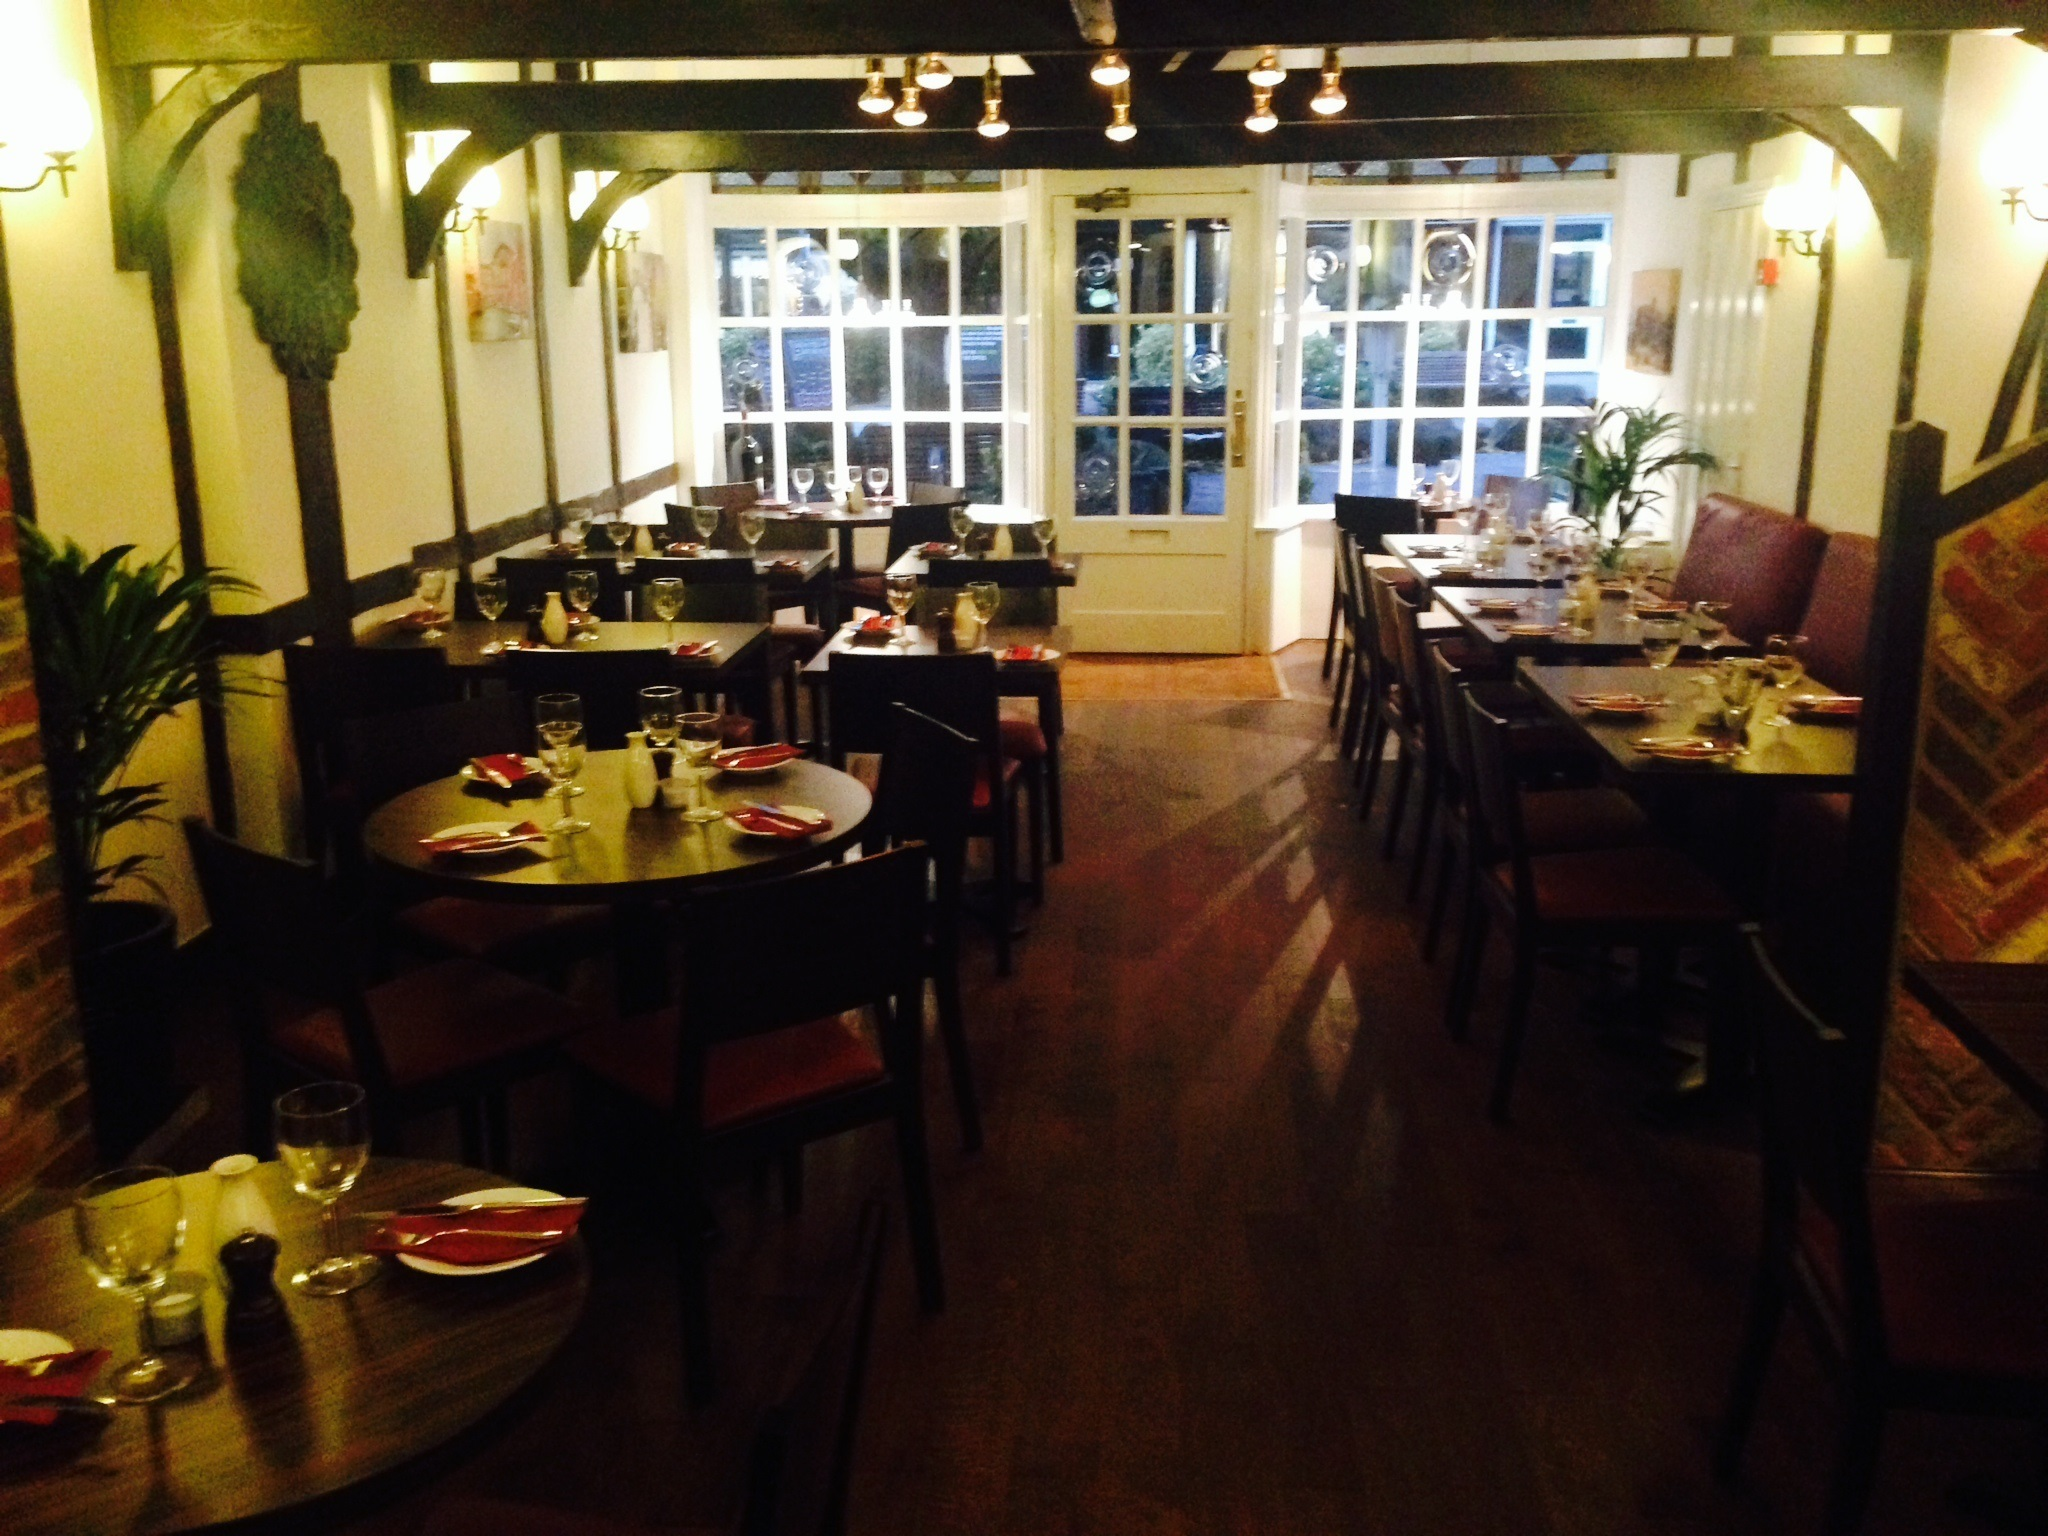 La Piazzetta - Horsham - West Sussex